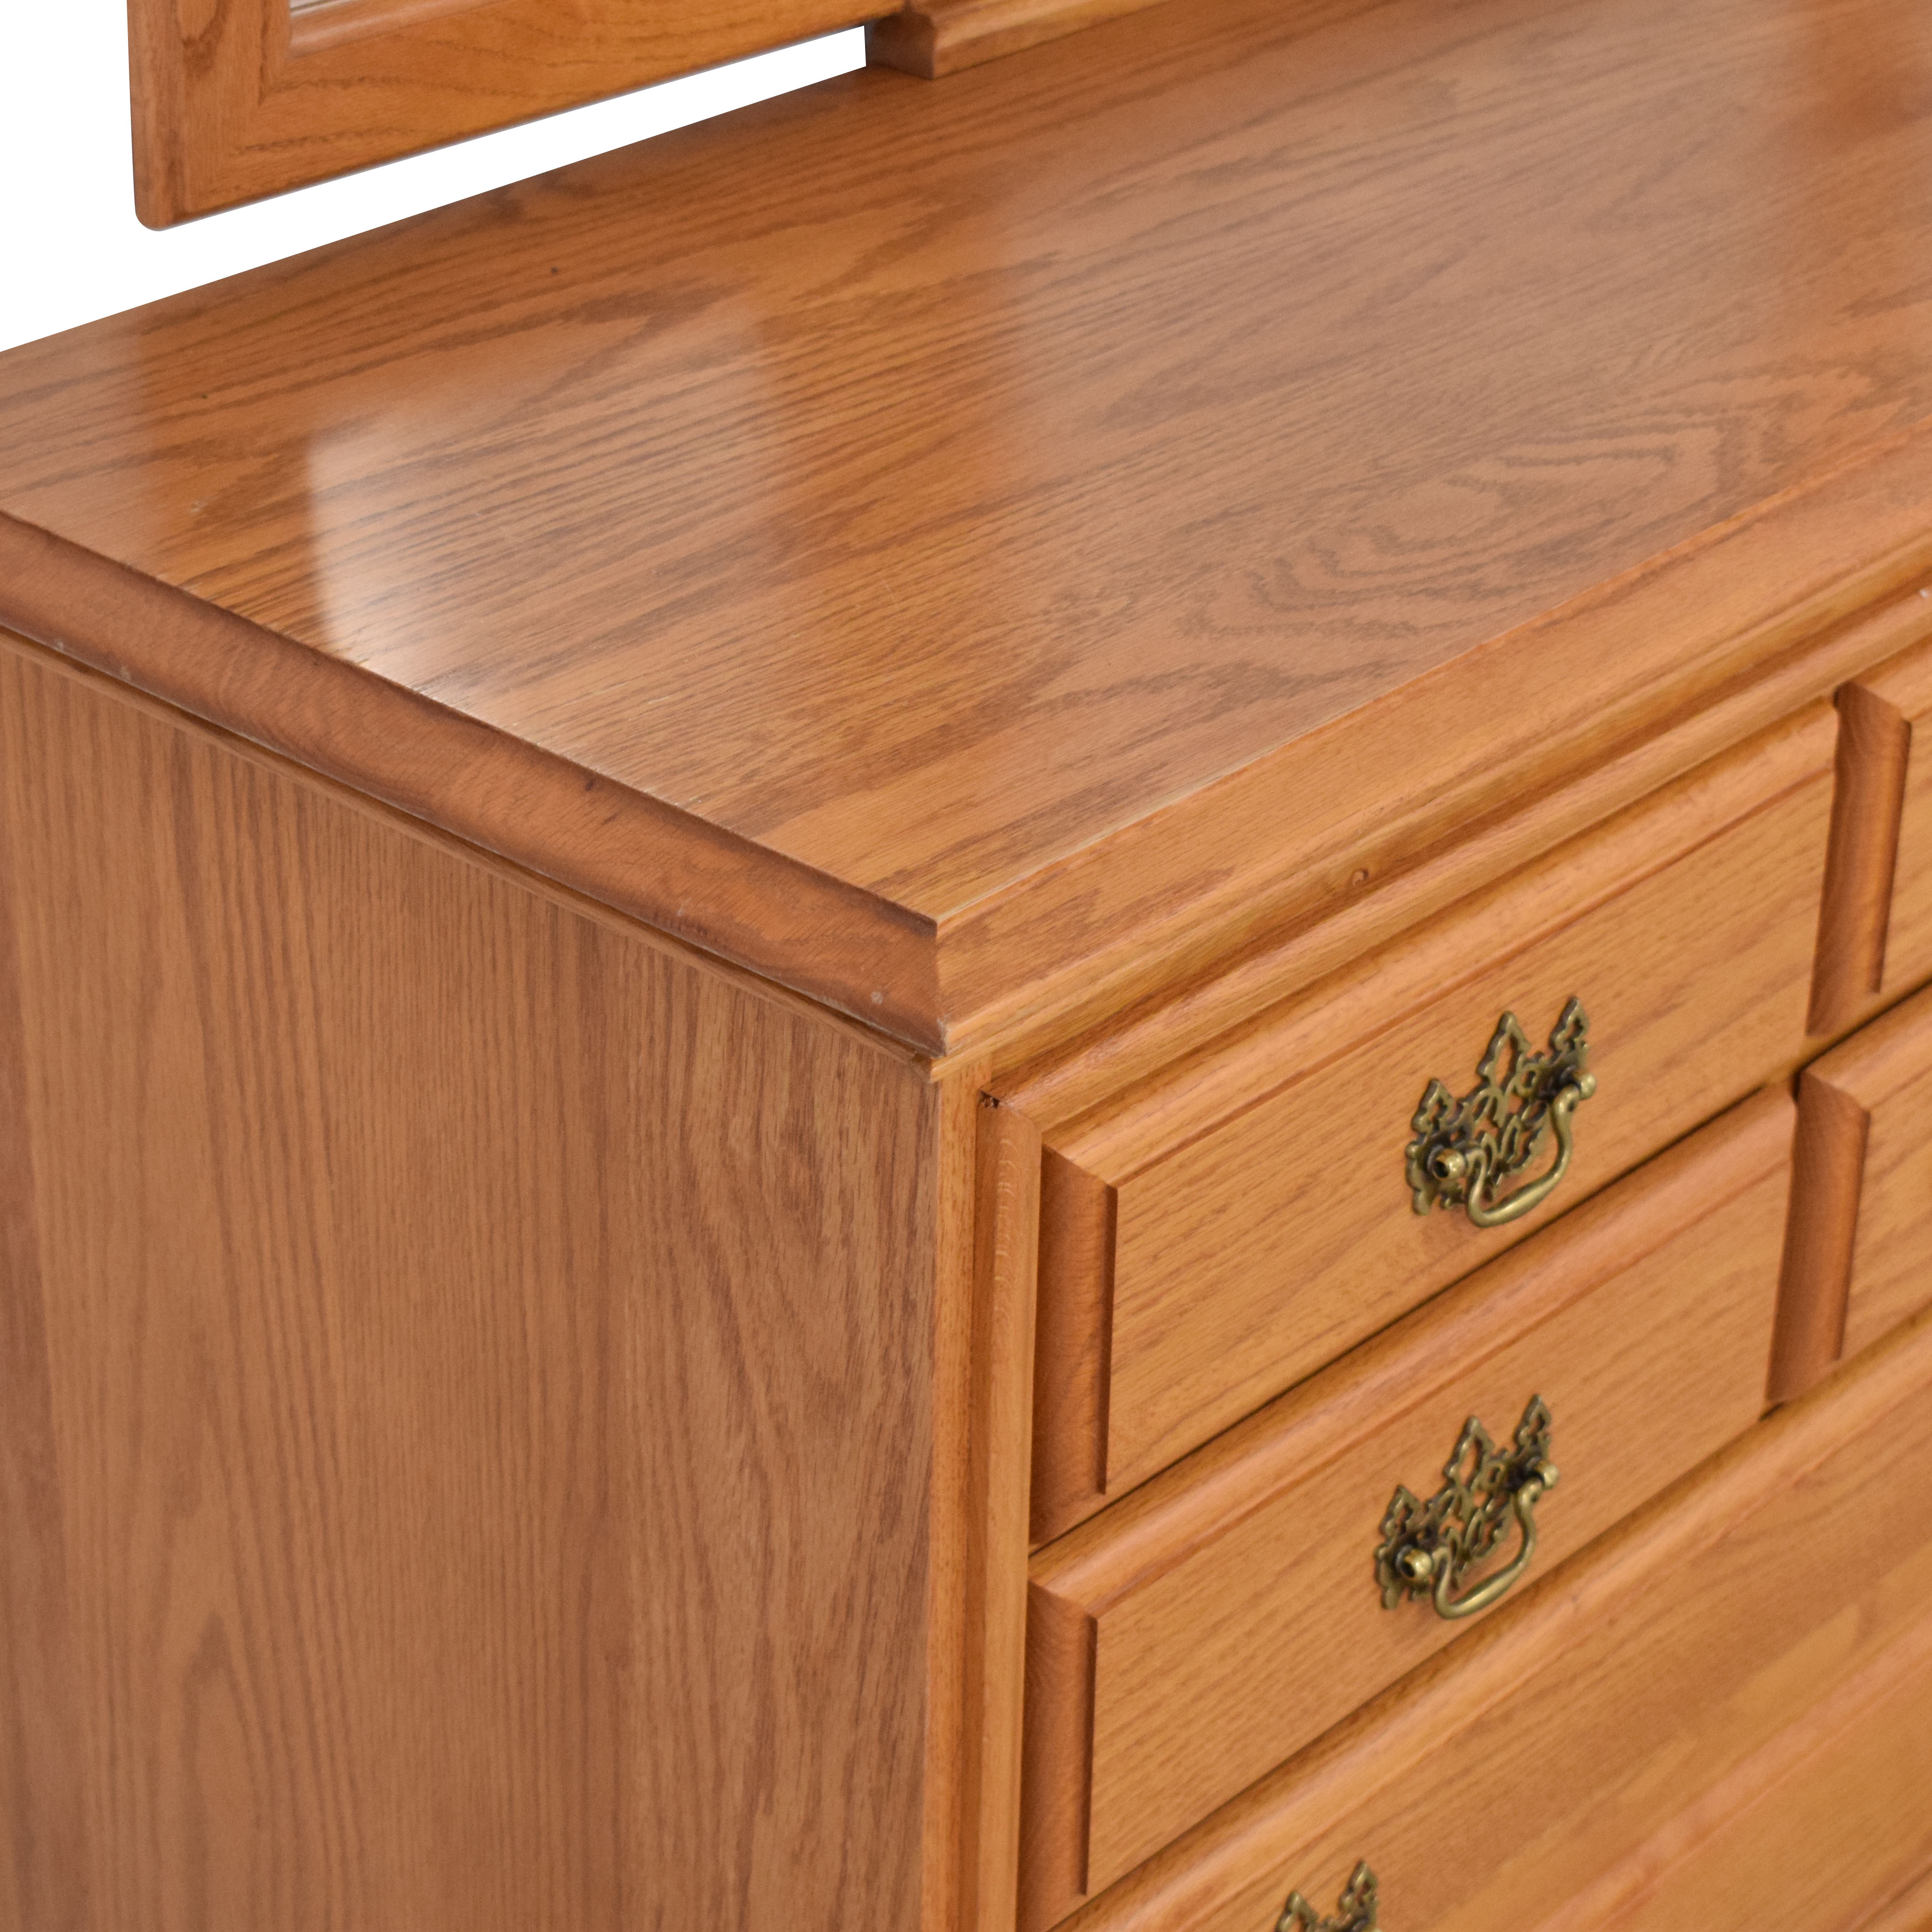 Masterfield Furniture Masterfield Furniture Eight Drawer Dresser with Mirror for sale